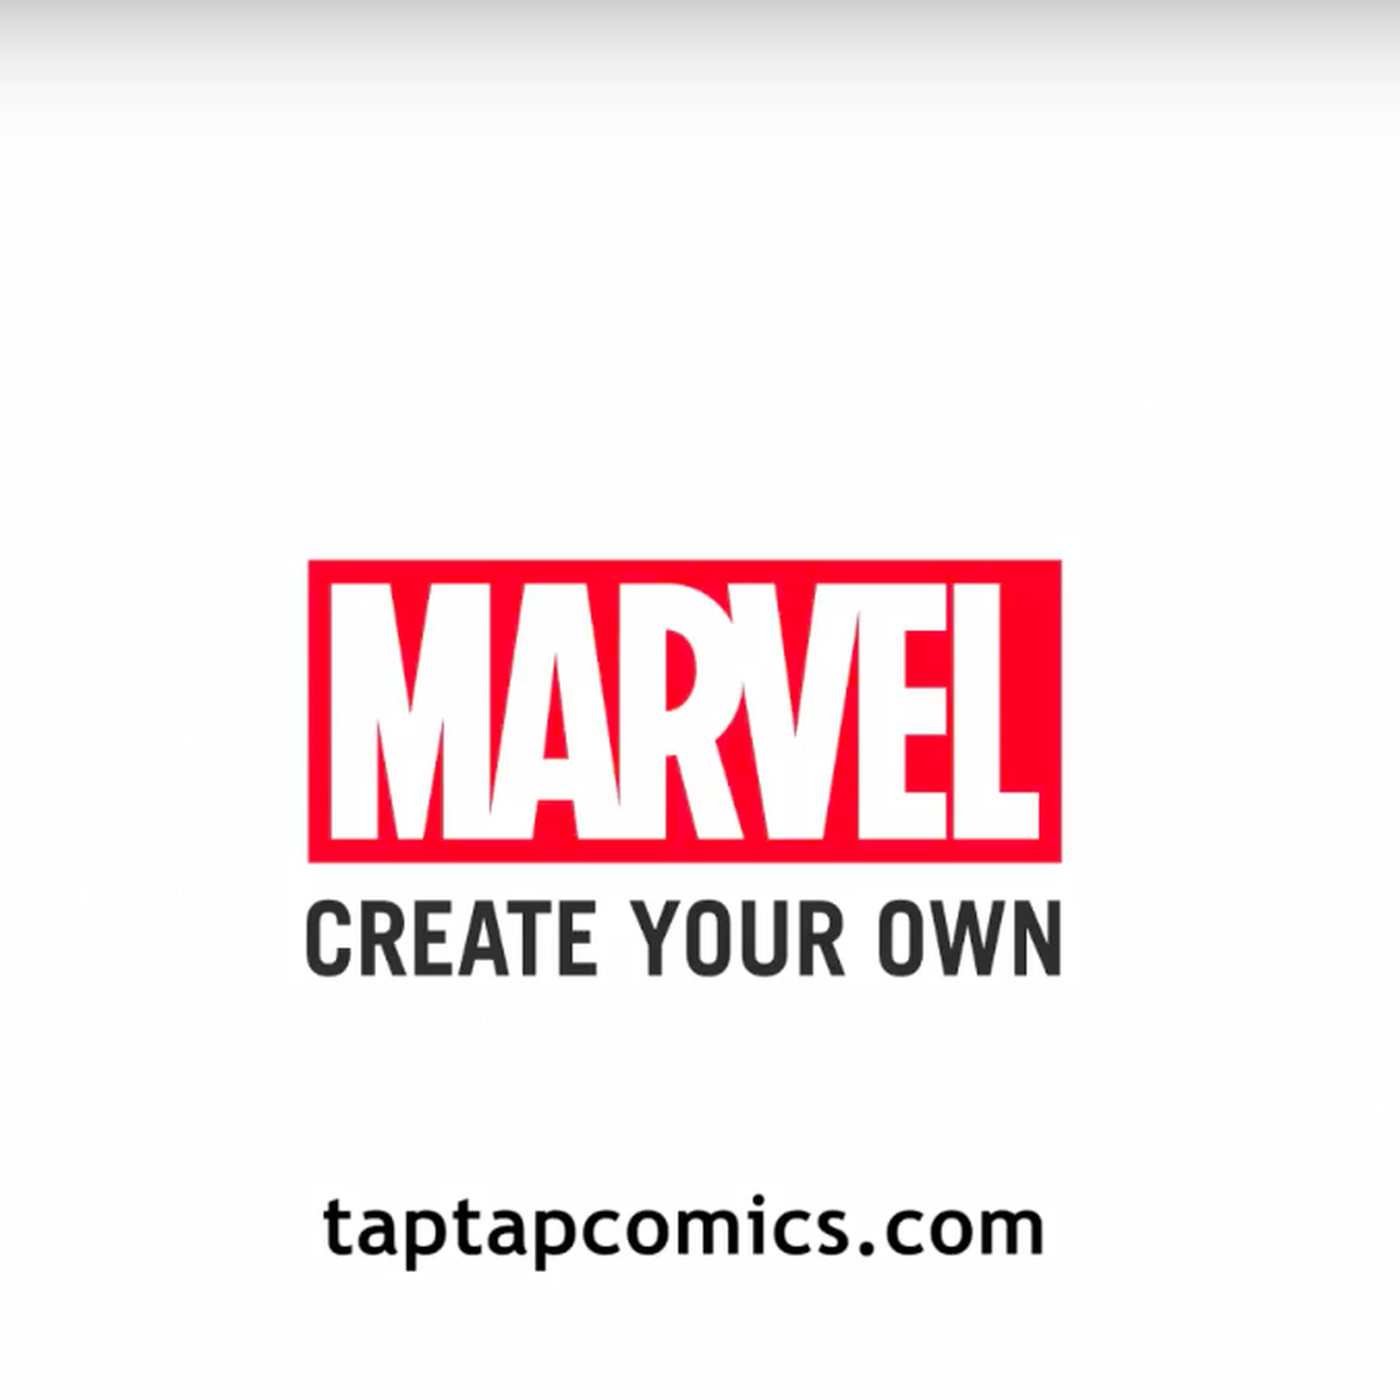 Marvel wants you to write comics with no farts, death